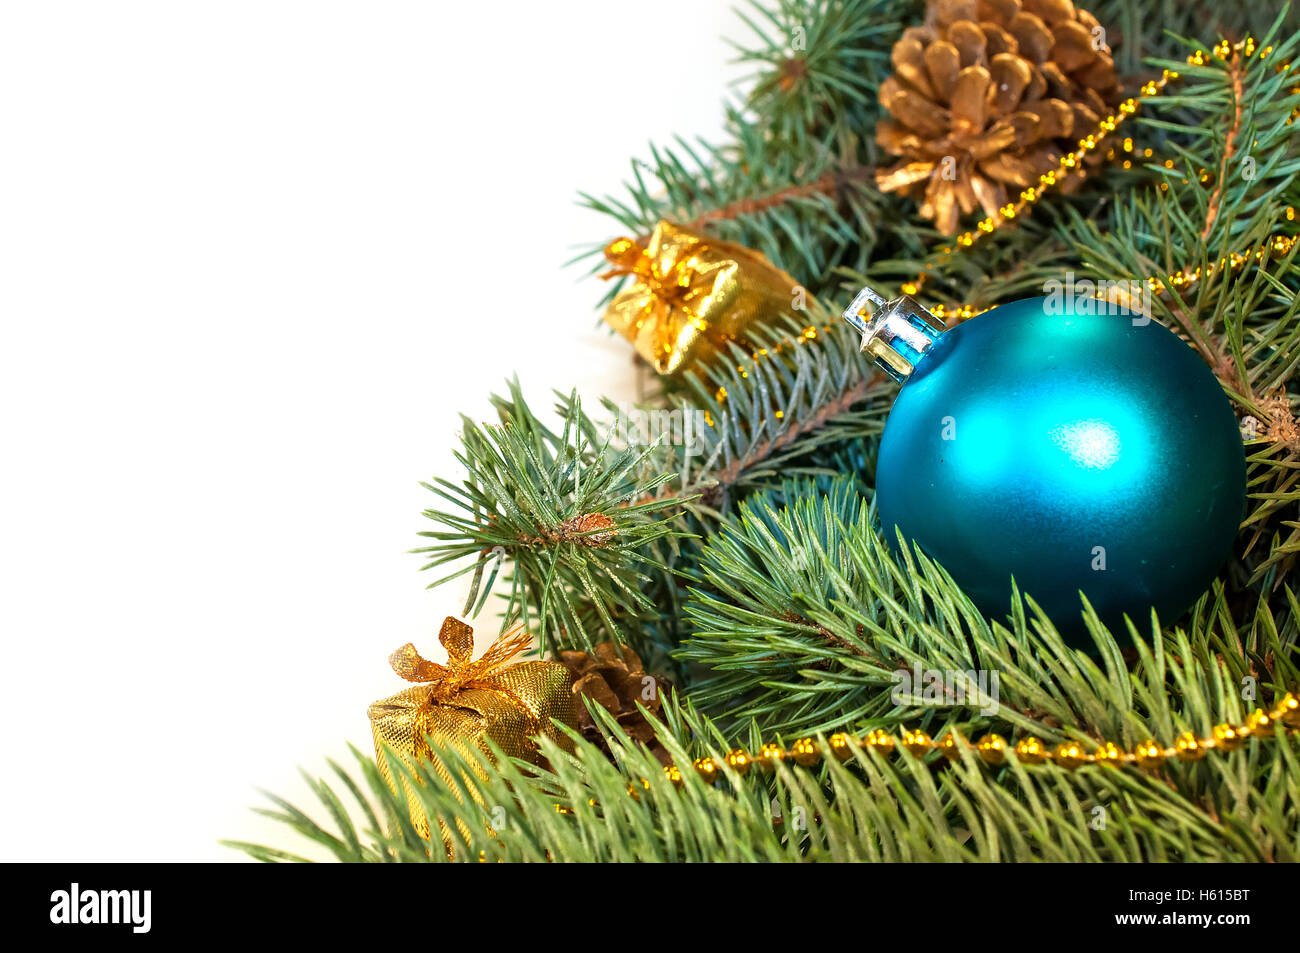 furry christmas tree branches with cones gifts stock image - Furry Christmas